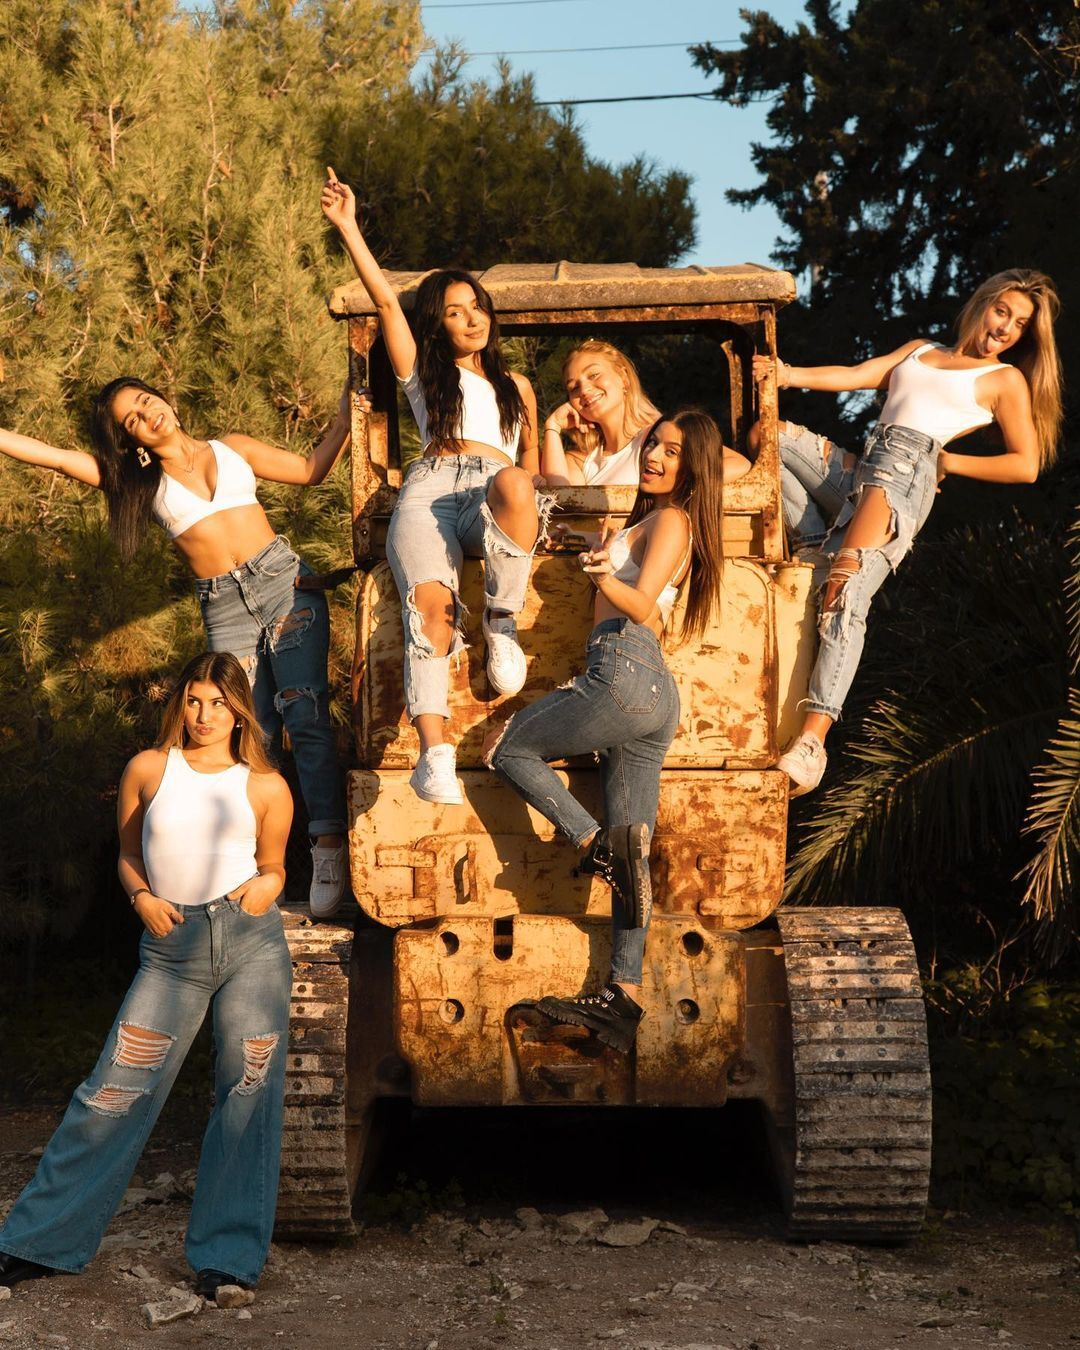 Clubhouse Europe household members posing on an old, dilapidated tractor